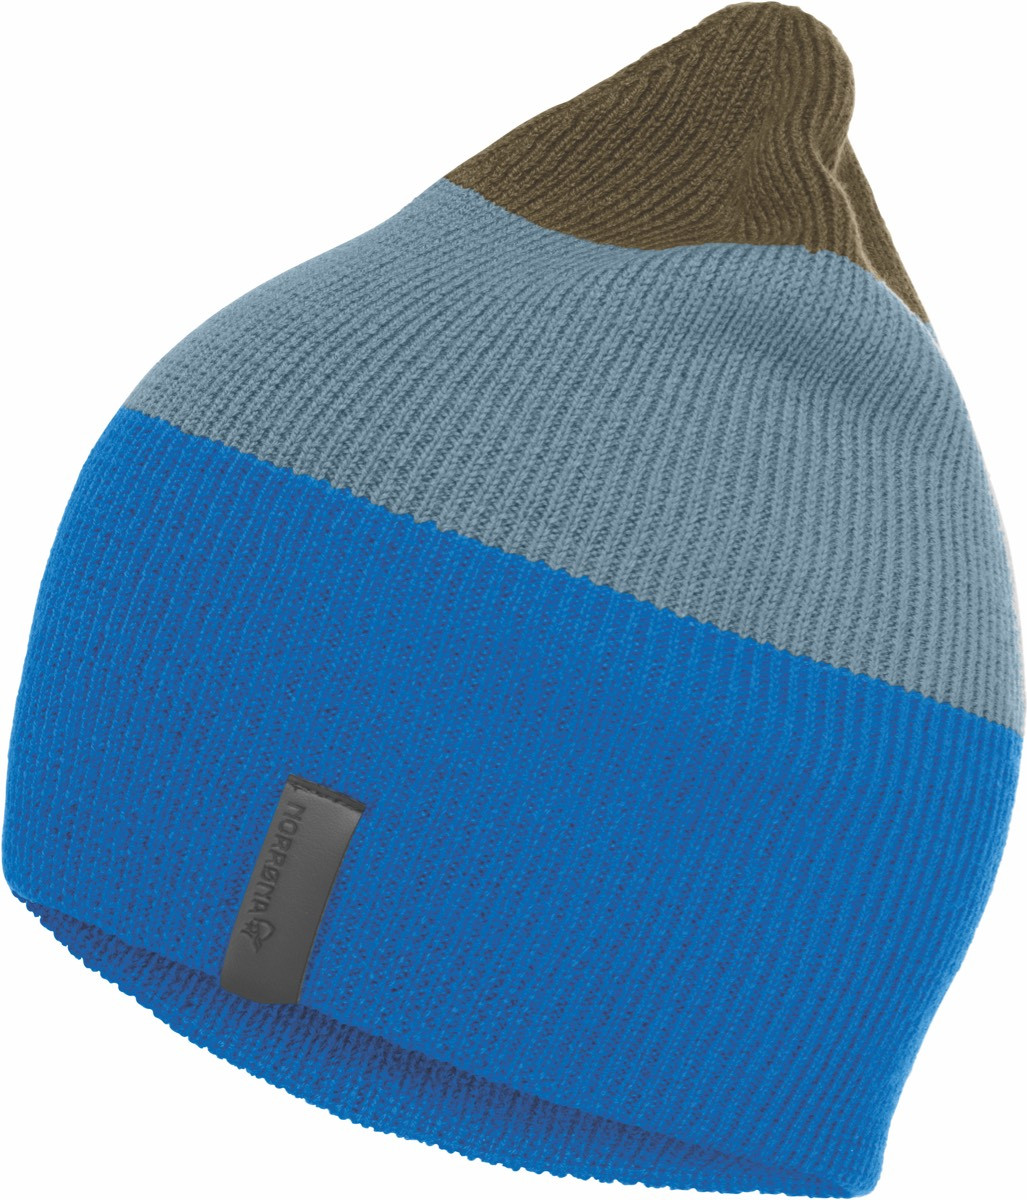 90d099c8791 Norrøna  29 Striped Mid Weight Beanie Hot Sapphire